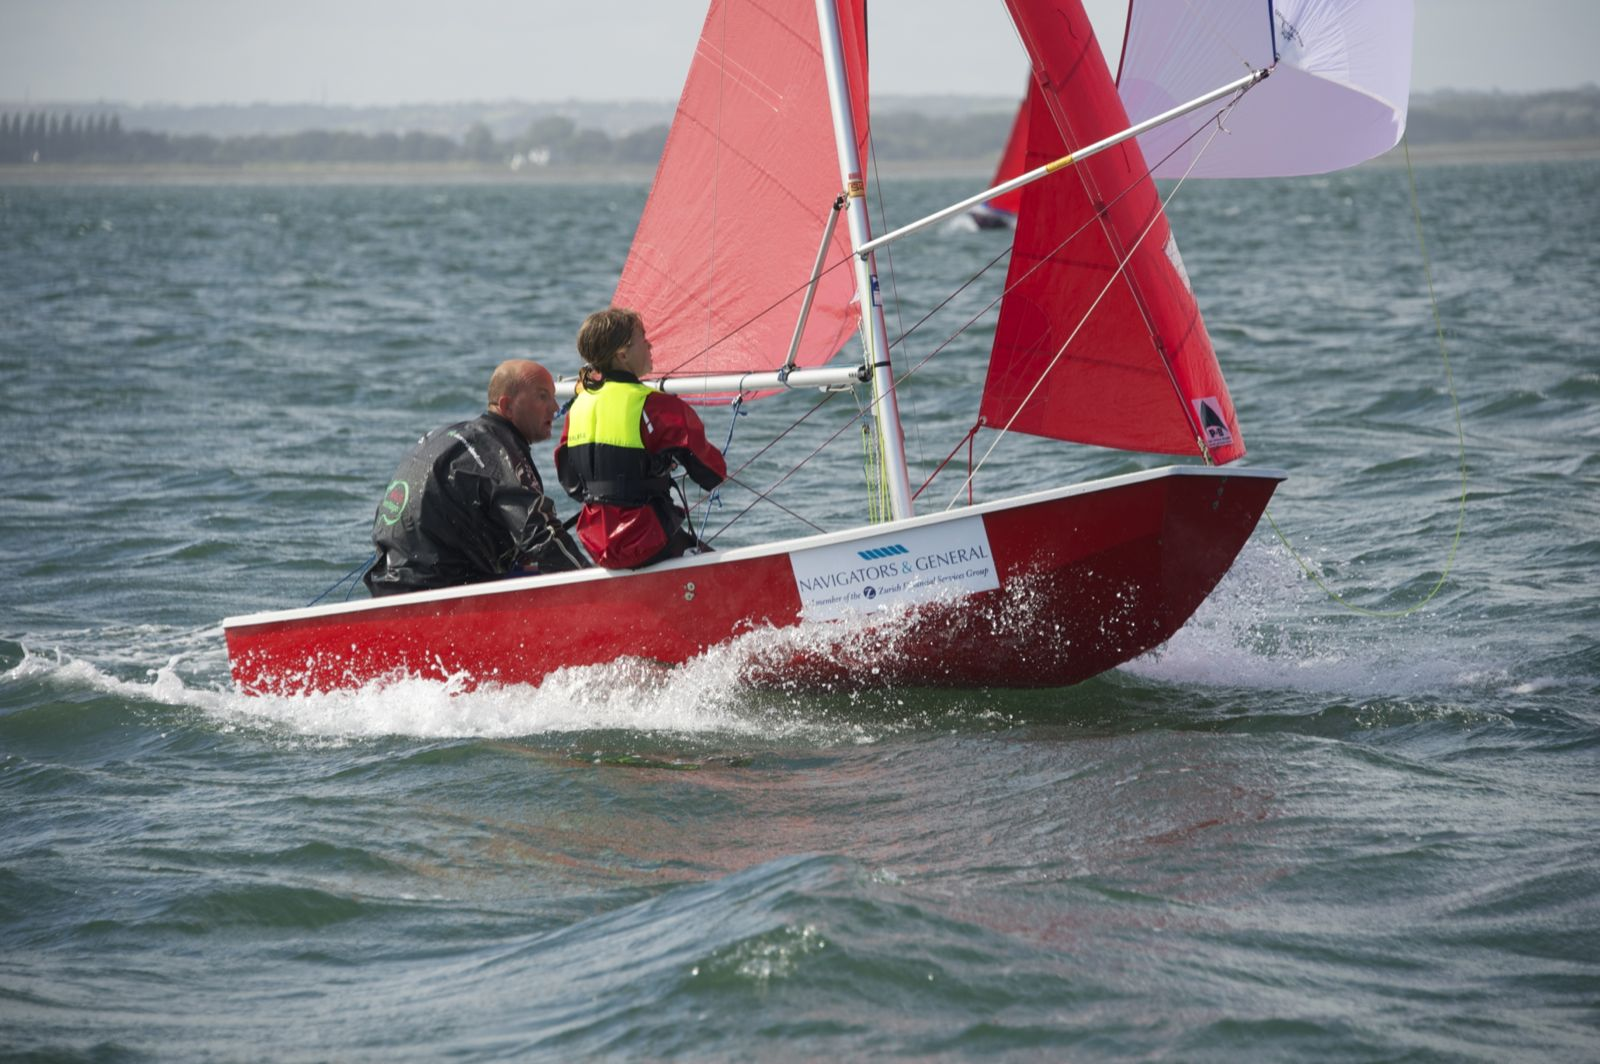 A red GRP Mirror dinghy with spinnaker racing on a reach